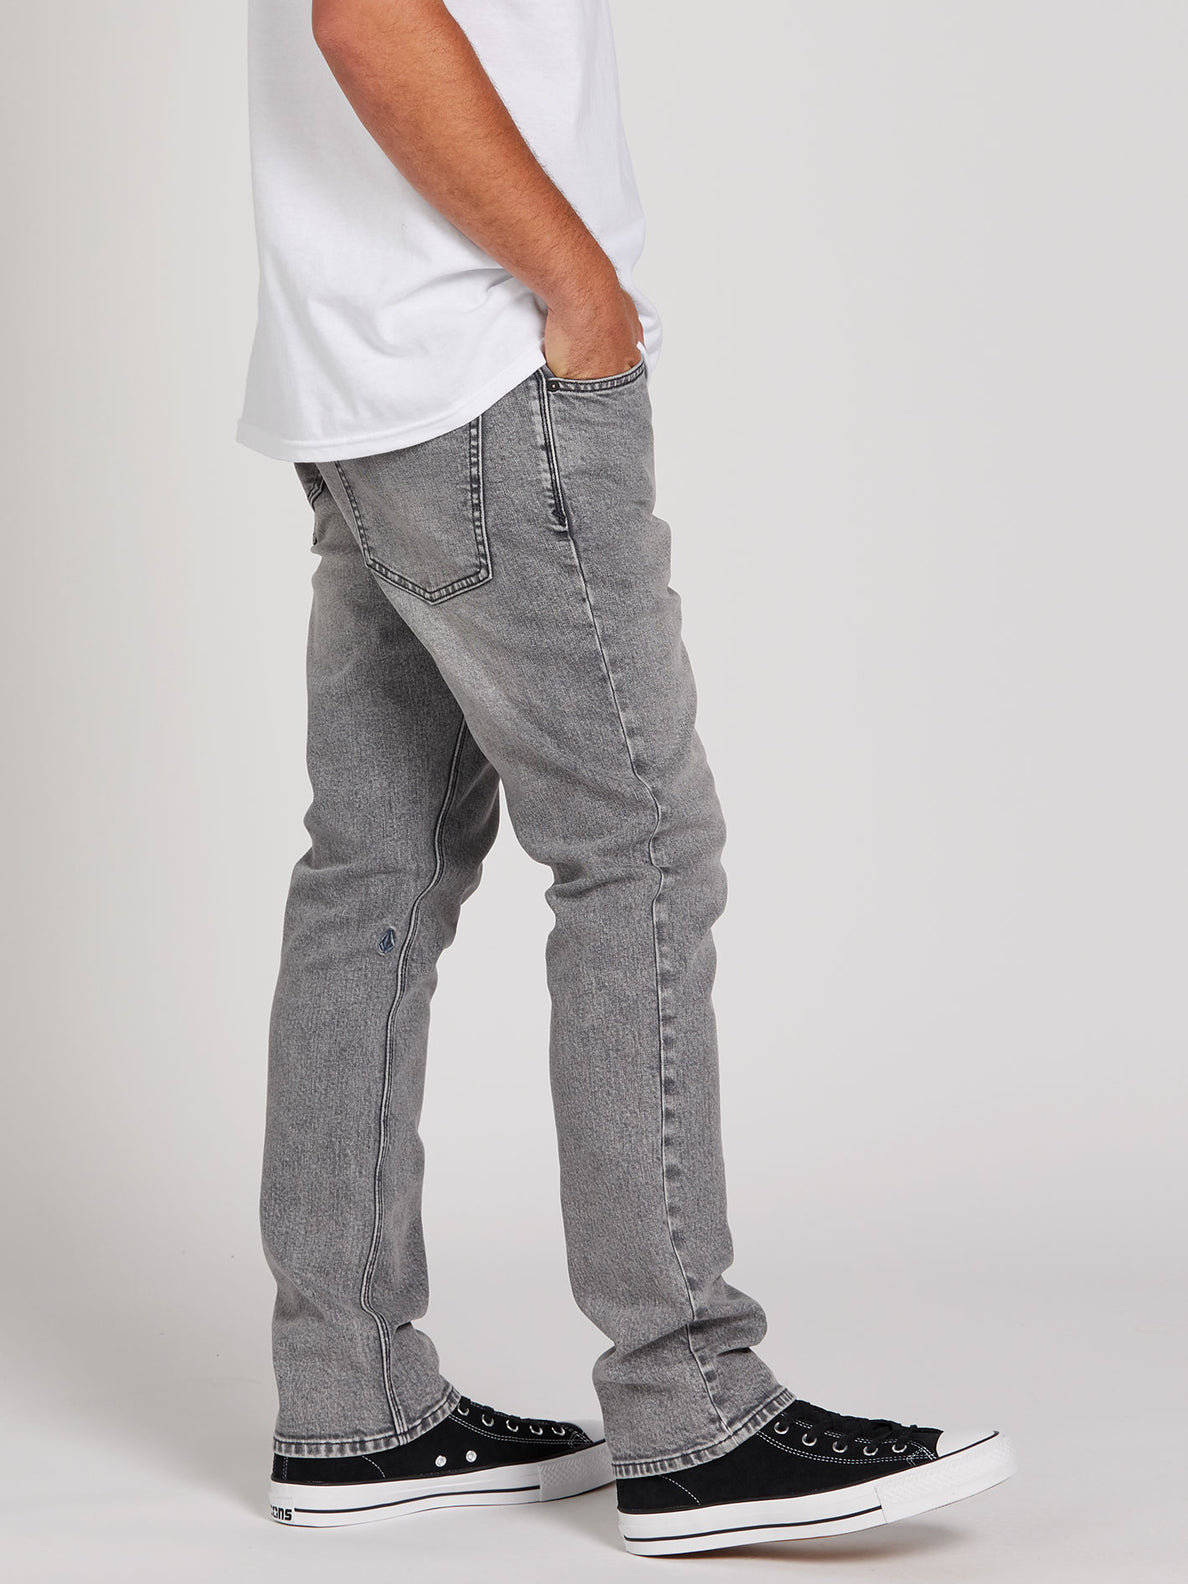 Vorta Slim Fit Jeans - Mono Grey (A1931501_MON) [3]